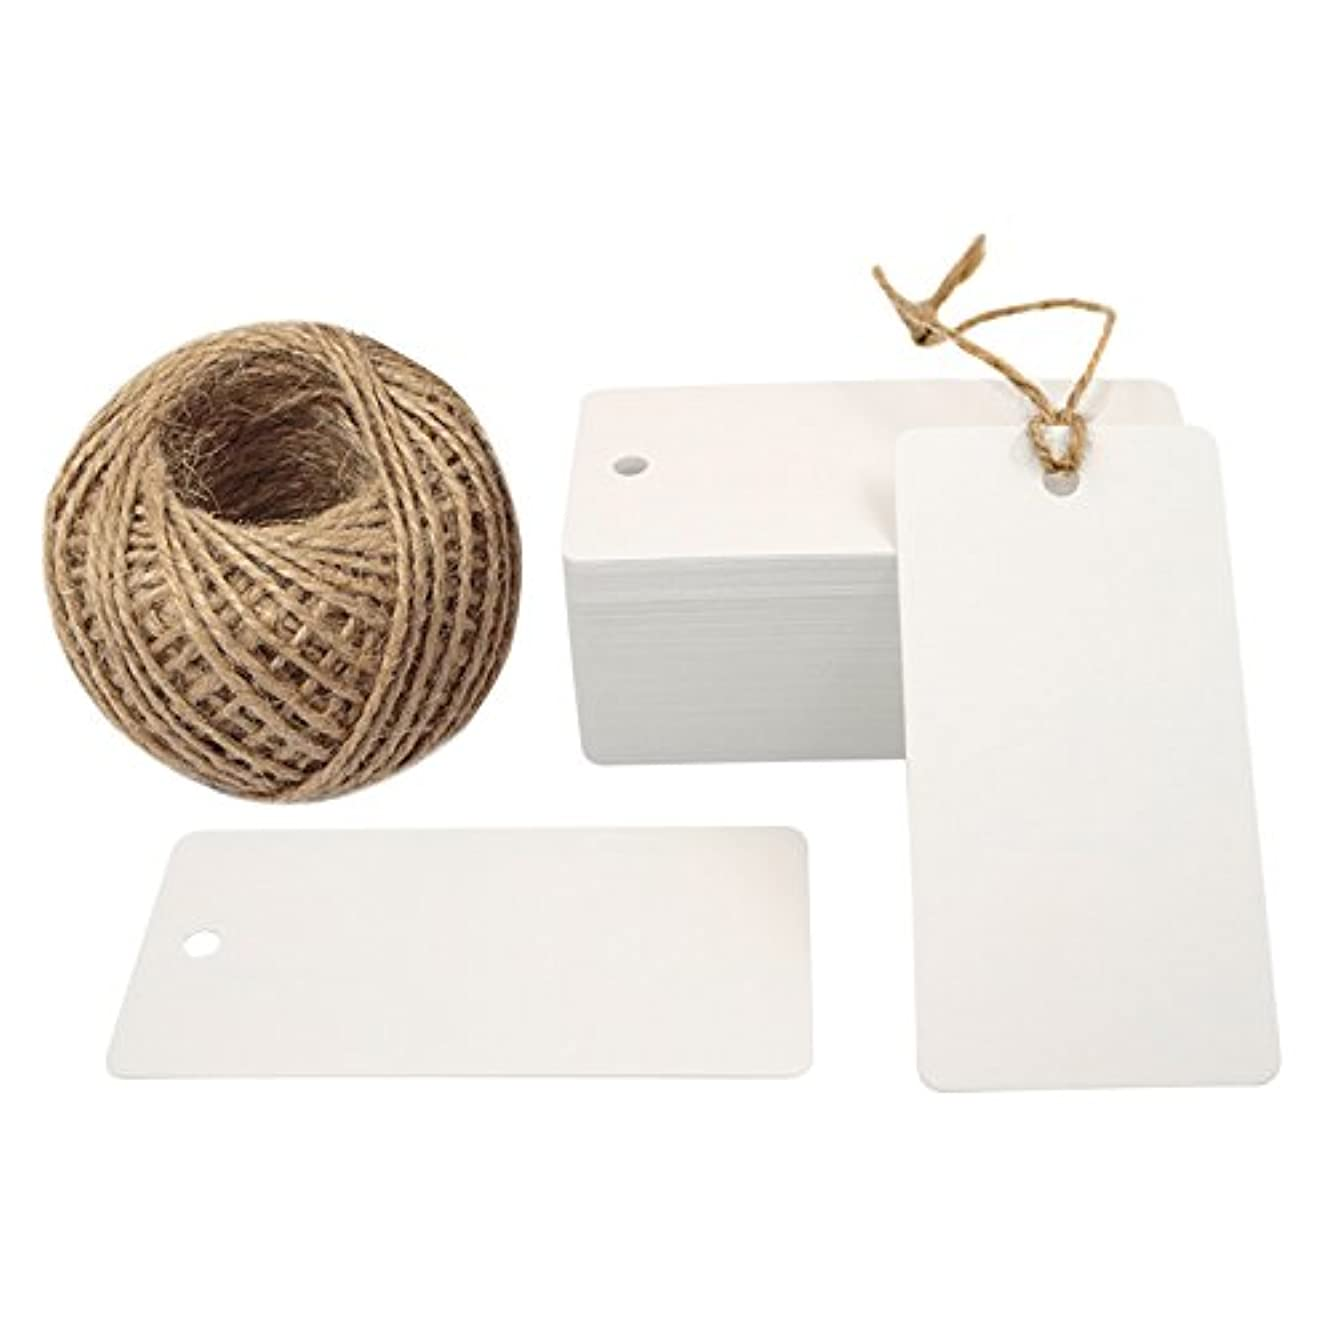 Kraft Gift Tags,100 PCS White Kraft Paper Gift Tag with 100 Feet Jute Twine String, Rectangle Christmas Gift Tags 3.5'' x 1.7''